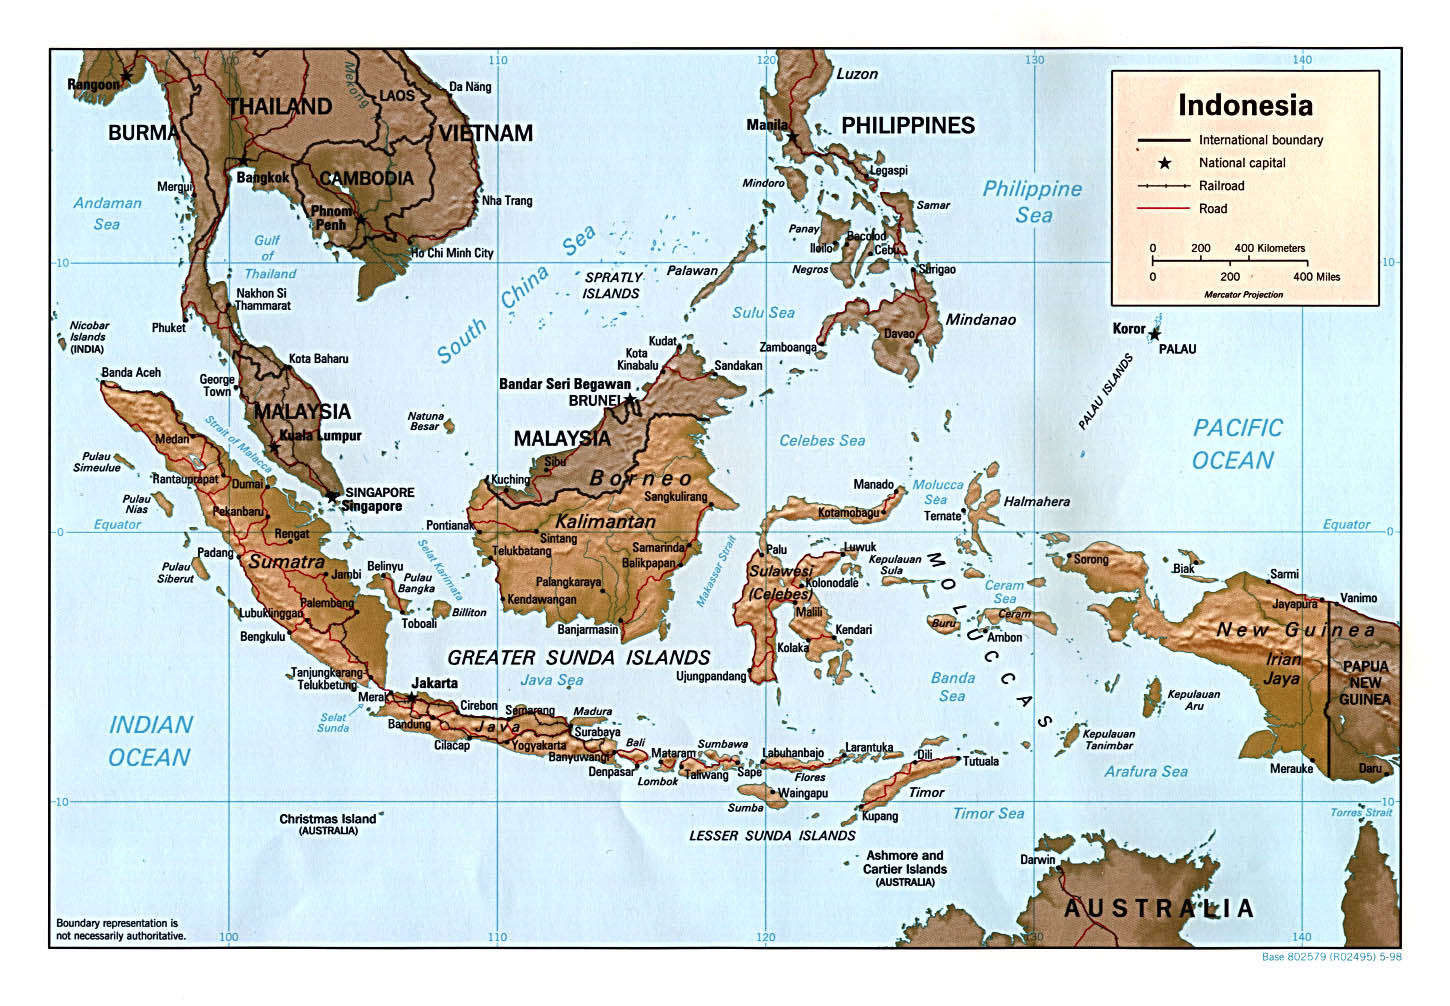 map of Indonesia Indonesia map and travel guide